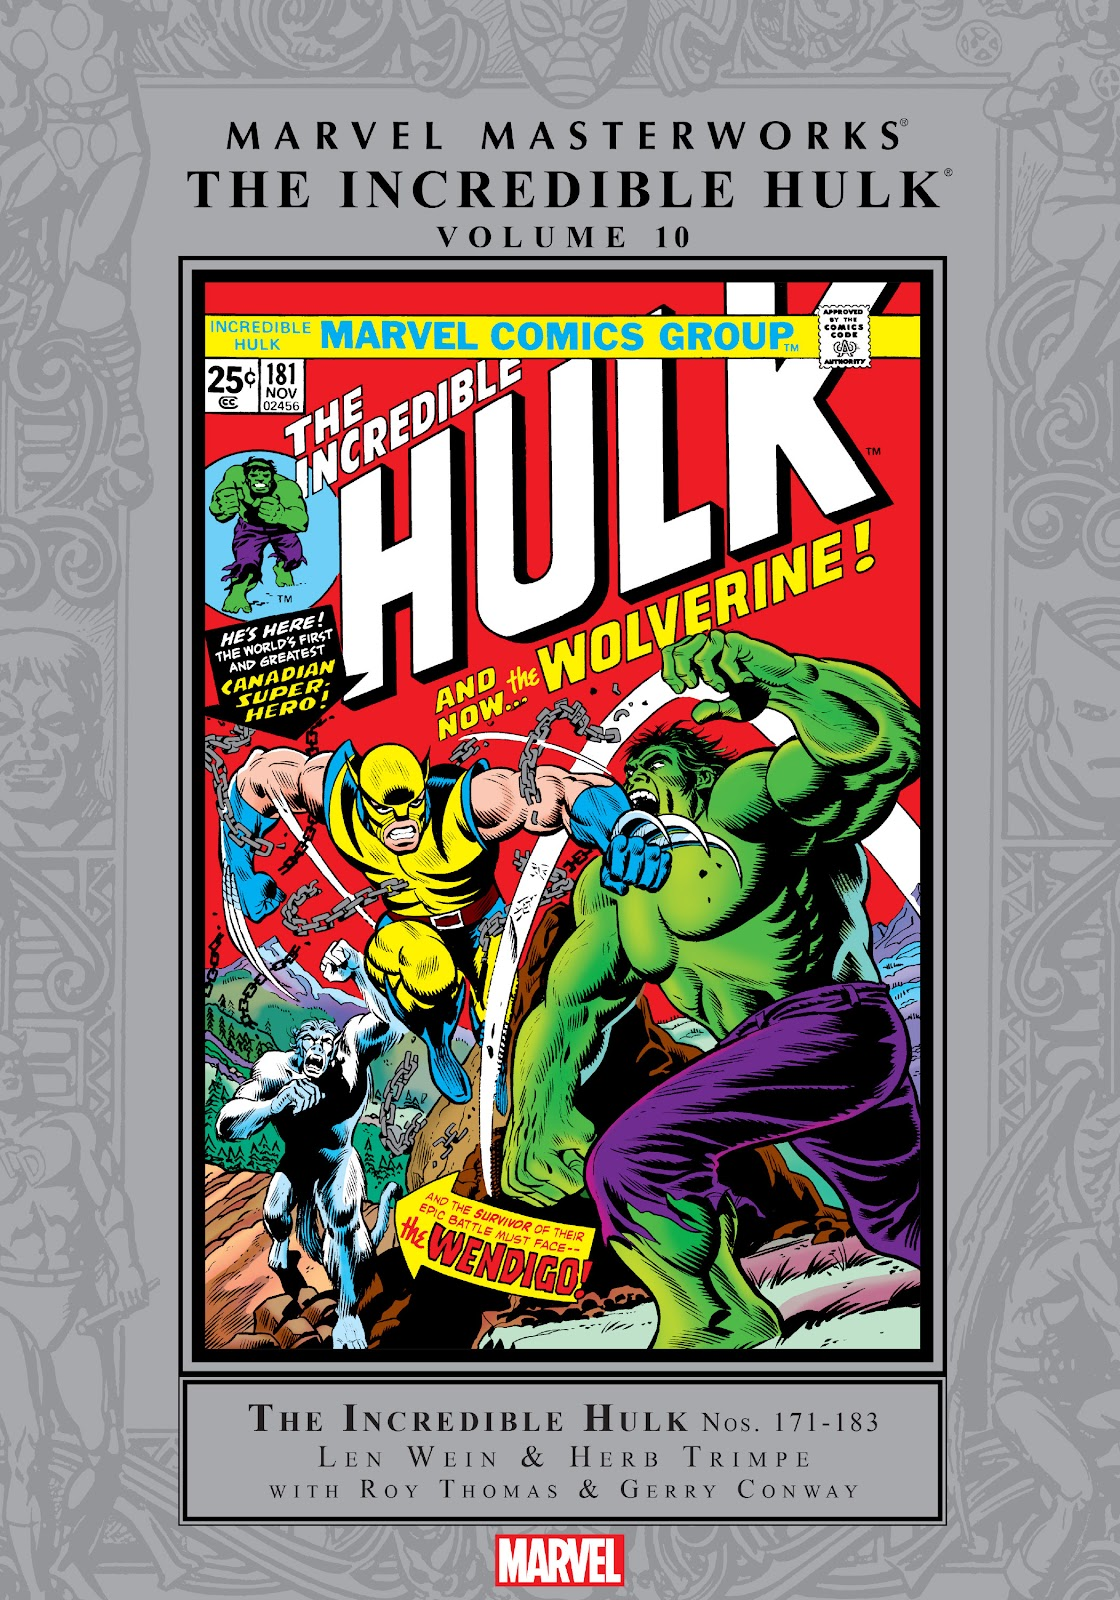 Read online Marvel Masterworks: The Incredible Hulk comic -  Issue # TPB 10 (Part 1) - 1